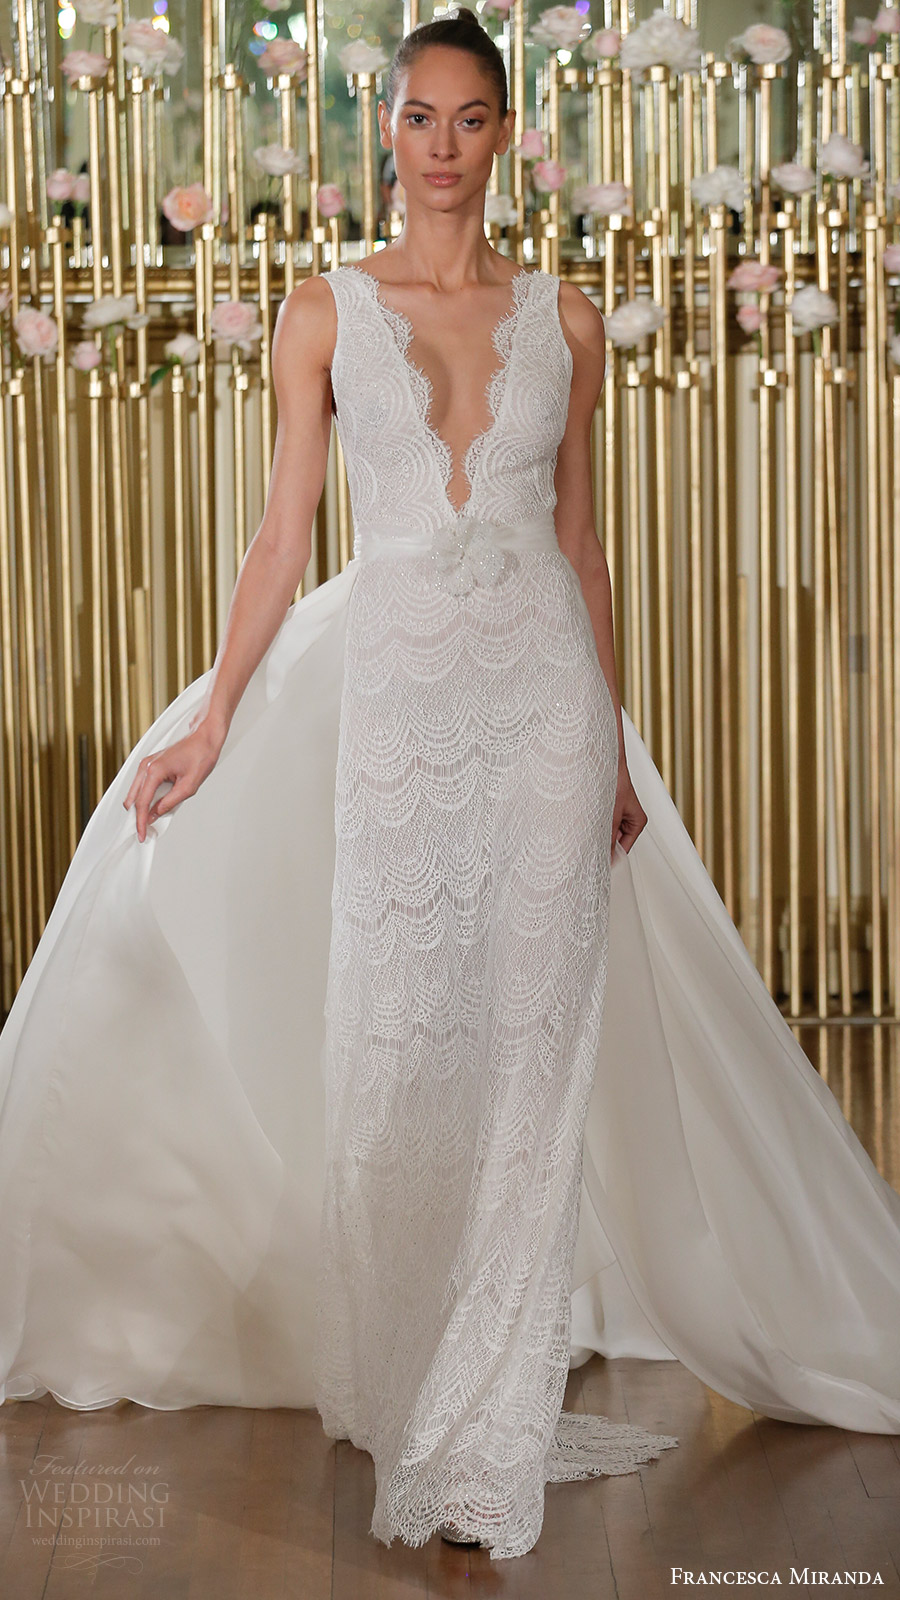 francesca miranda spring 2018 bridal sleeveless deep v neck lace trumpet wedding dress overskirt (selene) mv elegant romantic